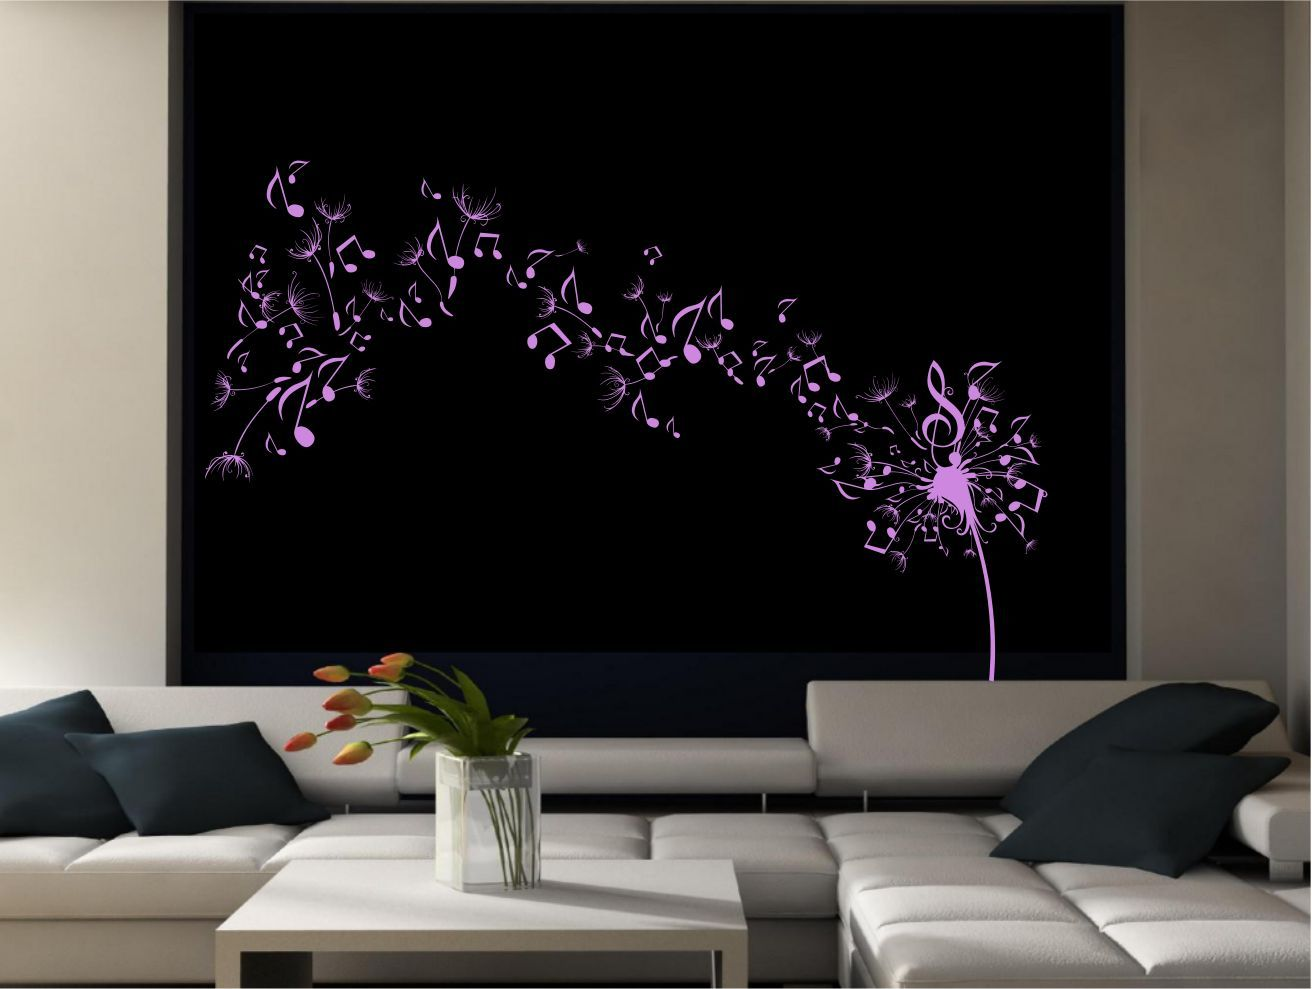 Dandelion clock seeds music note wall decal sticker for Clock wall mural